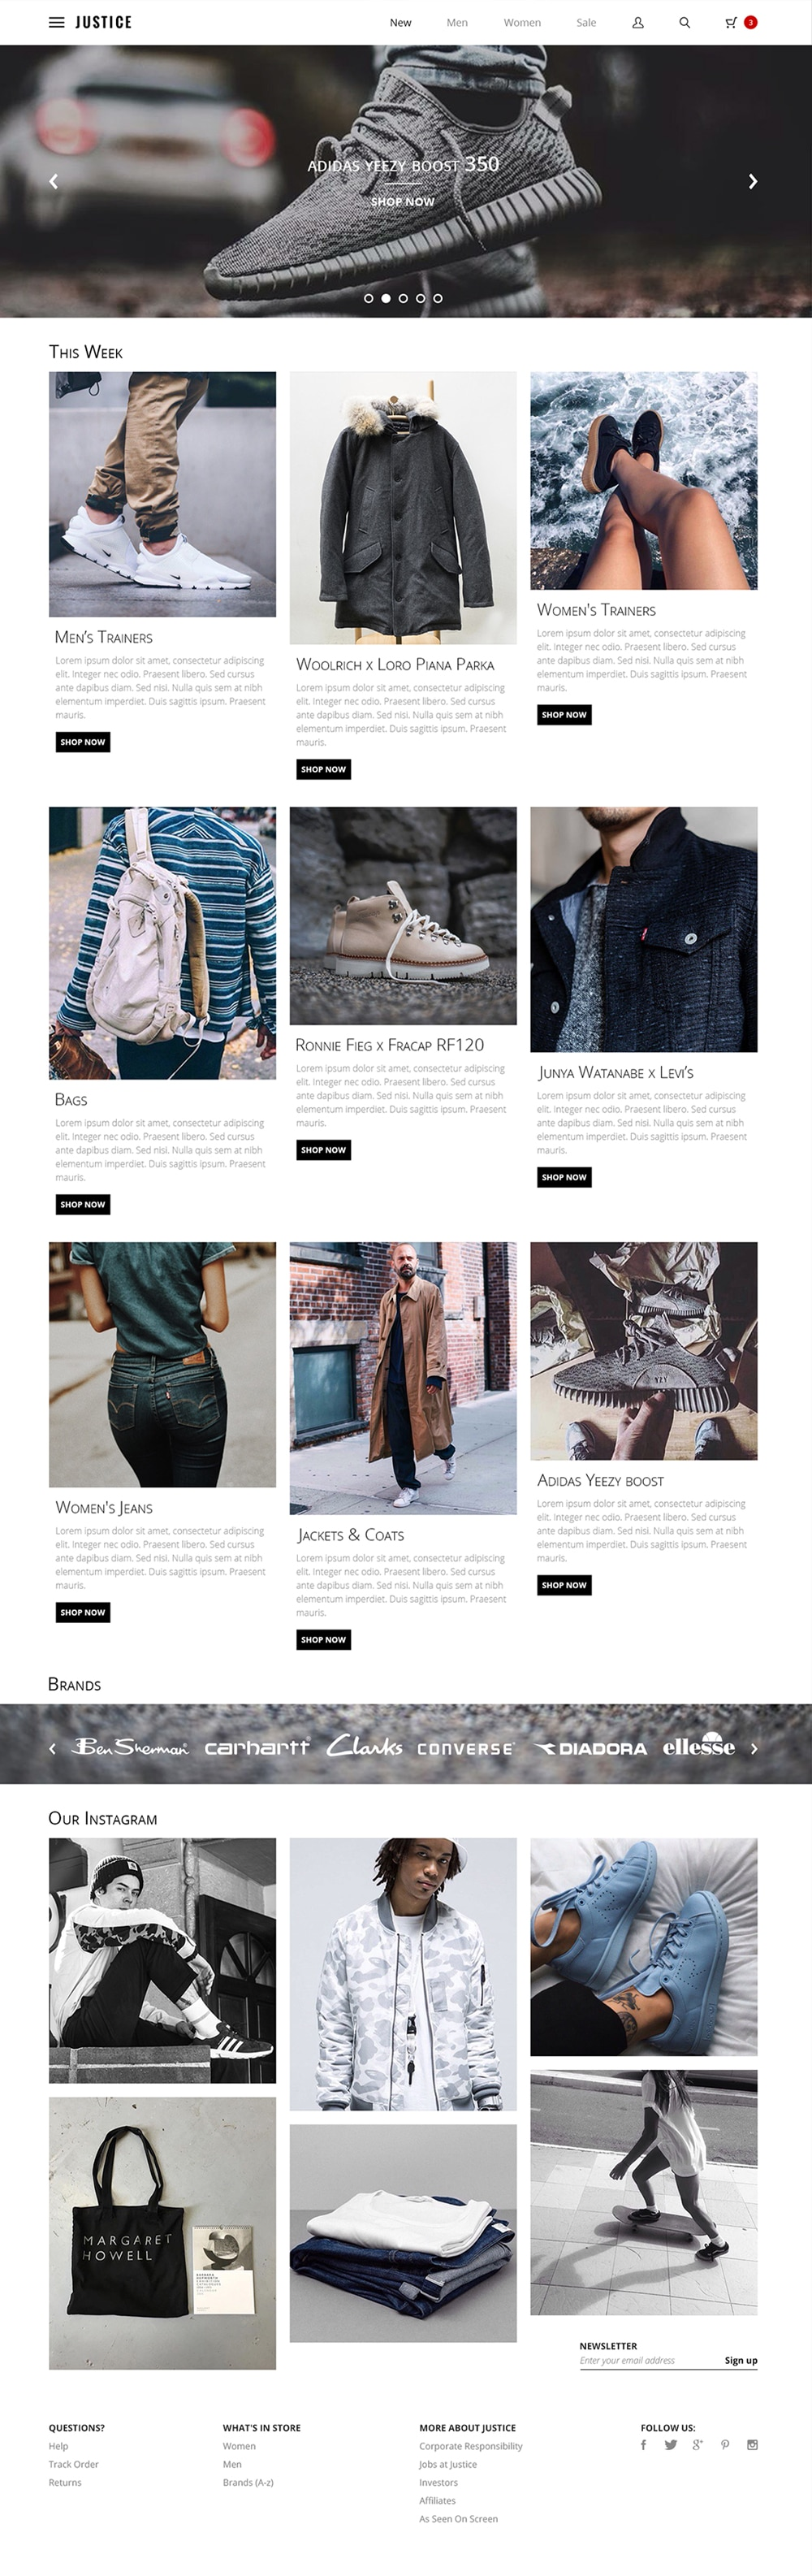 Justice Free Online Shop Web Template PSD